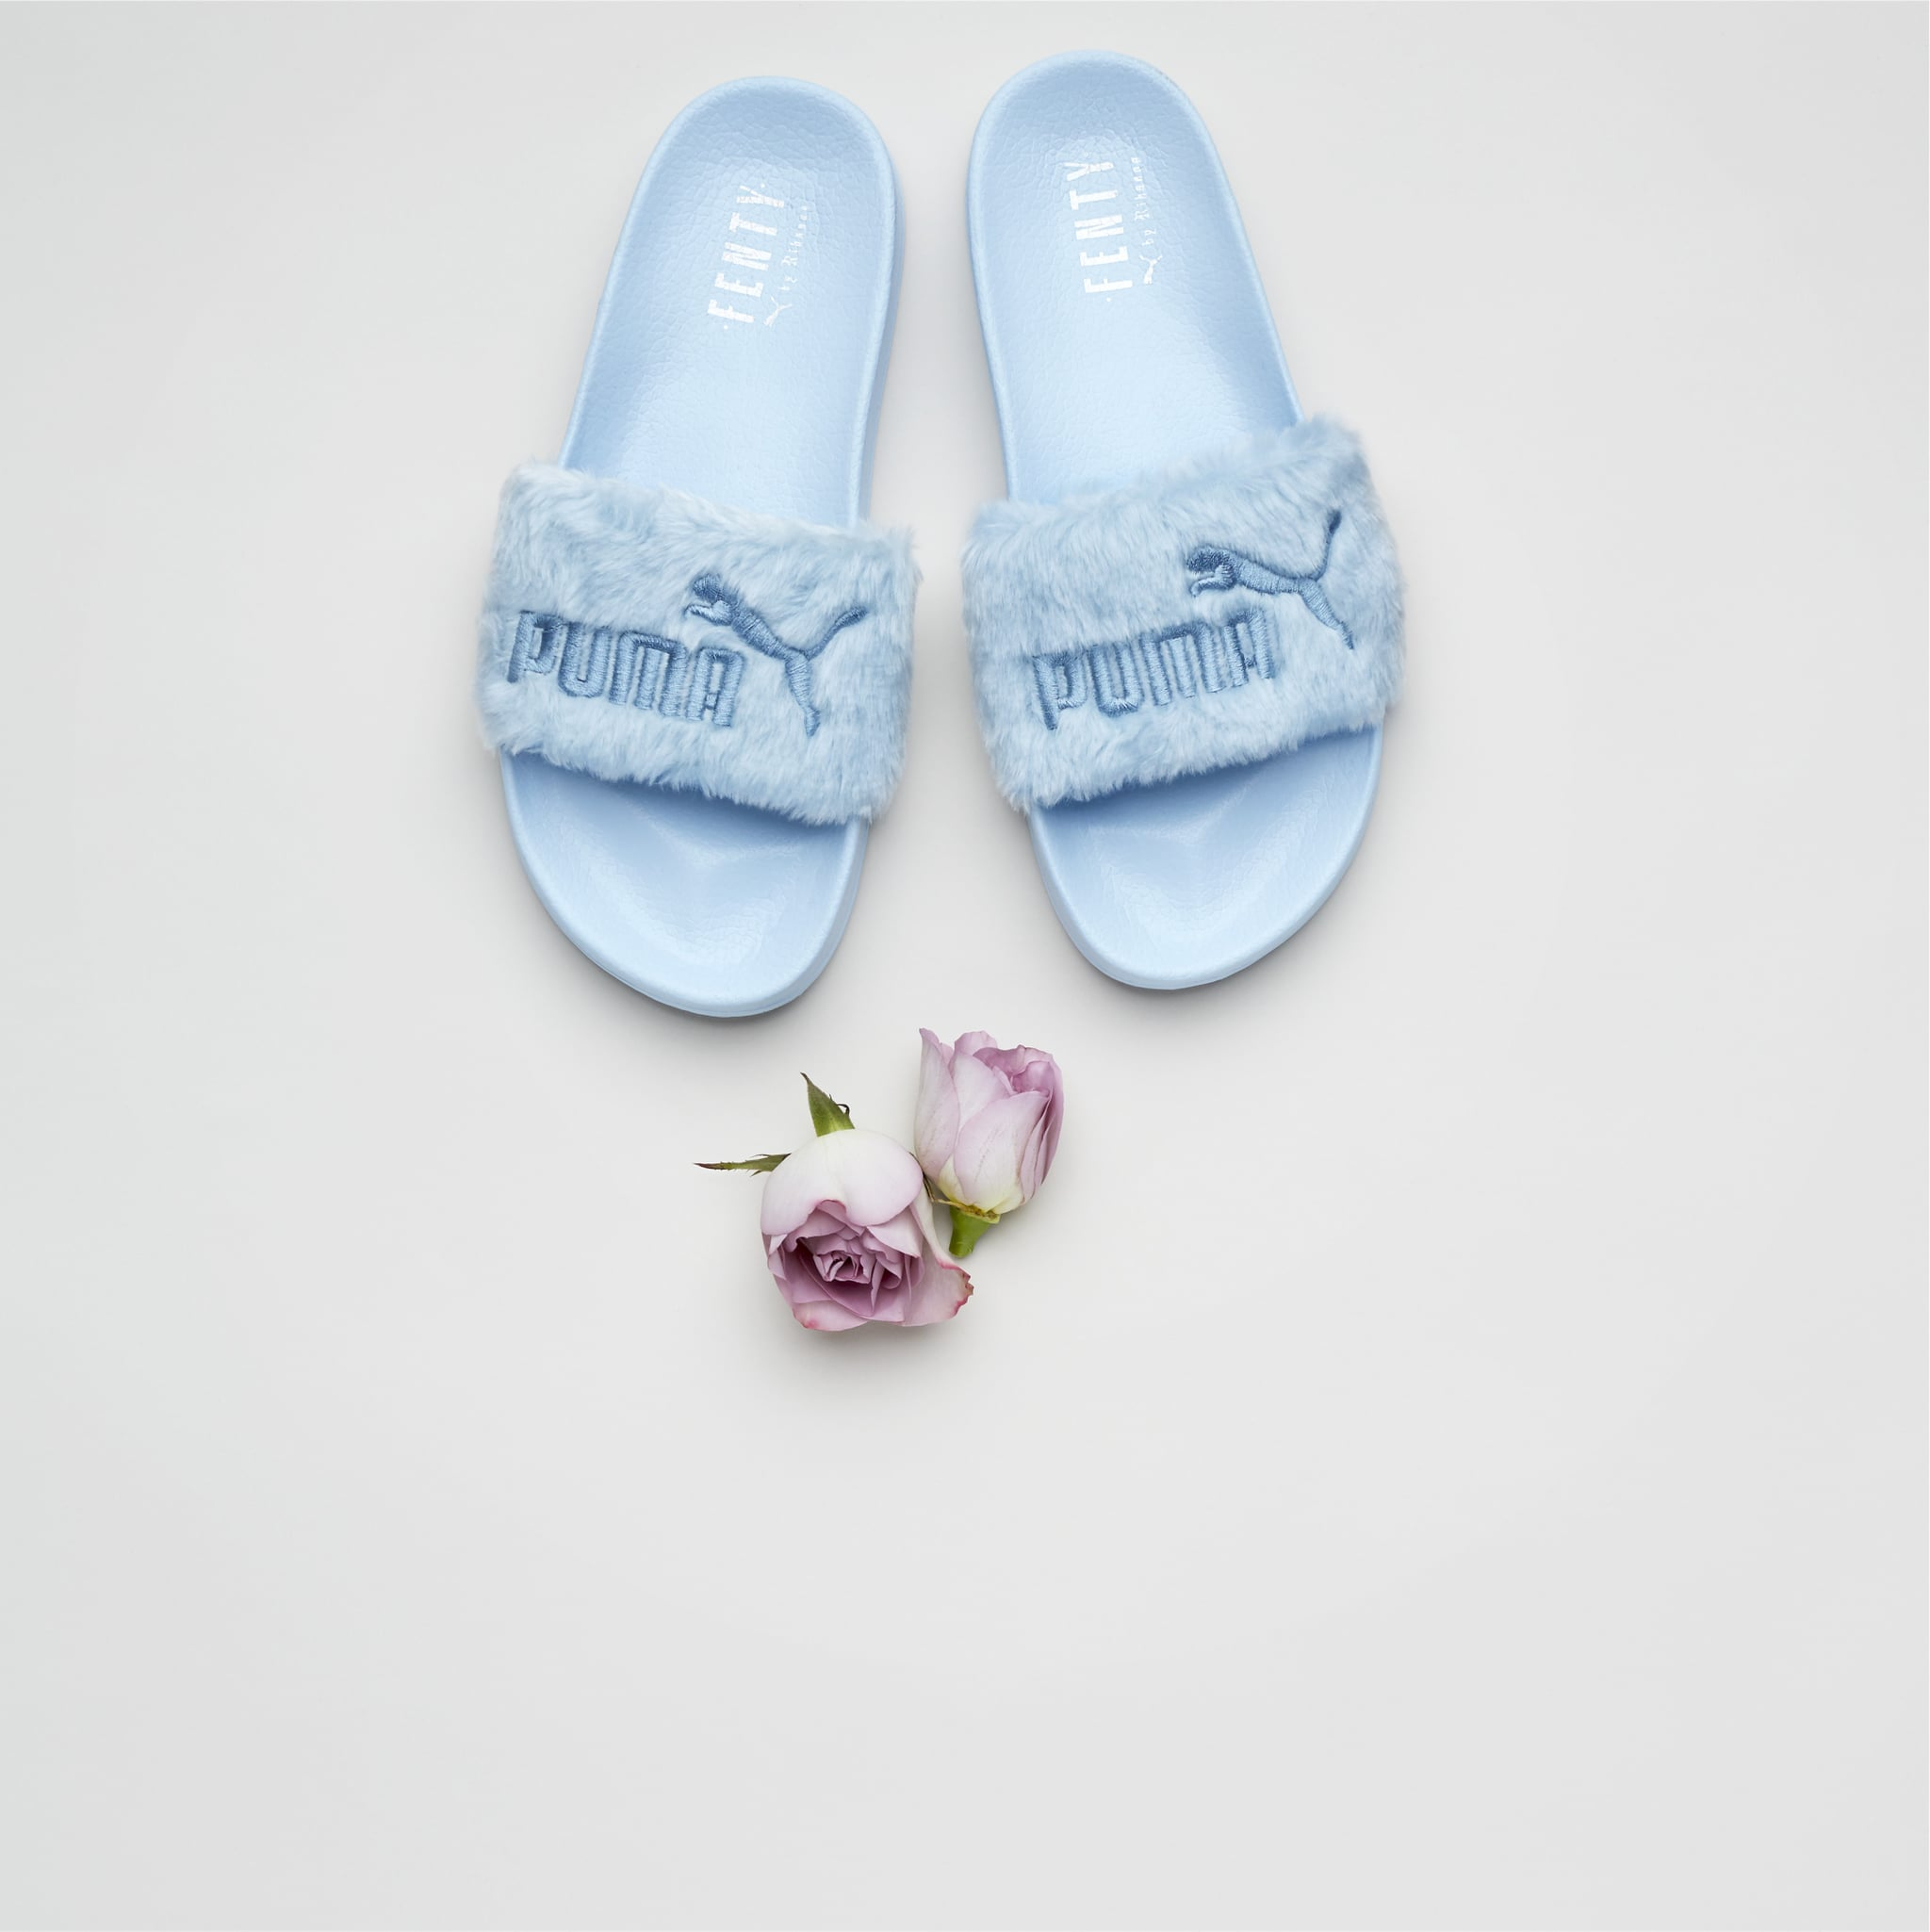 reputable site 8dacc 47172 Fur Women's Slide Sandals in Cool Blue ($90) | Rihanna's New ...